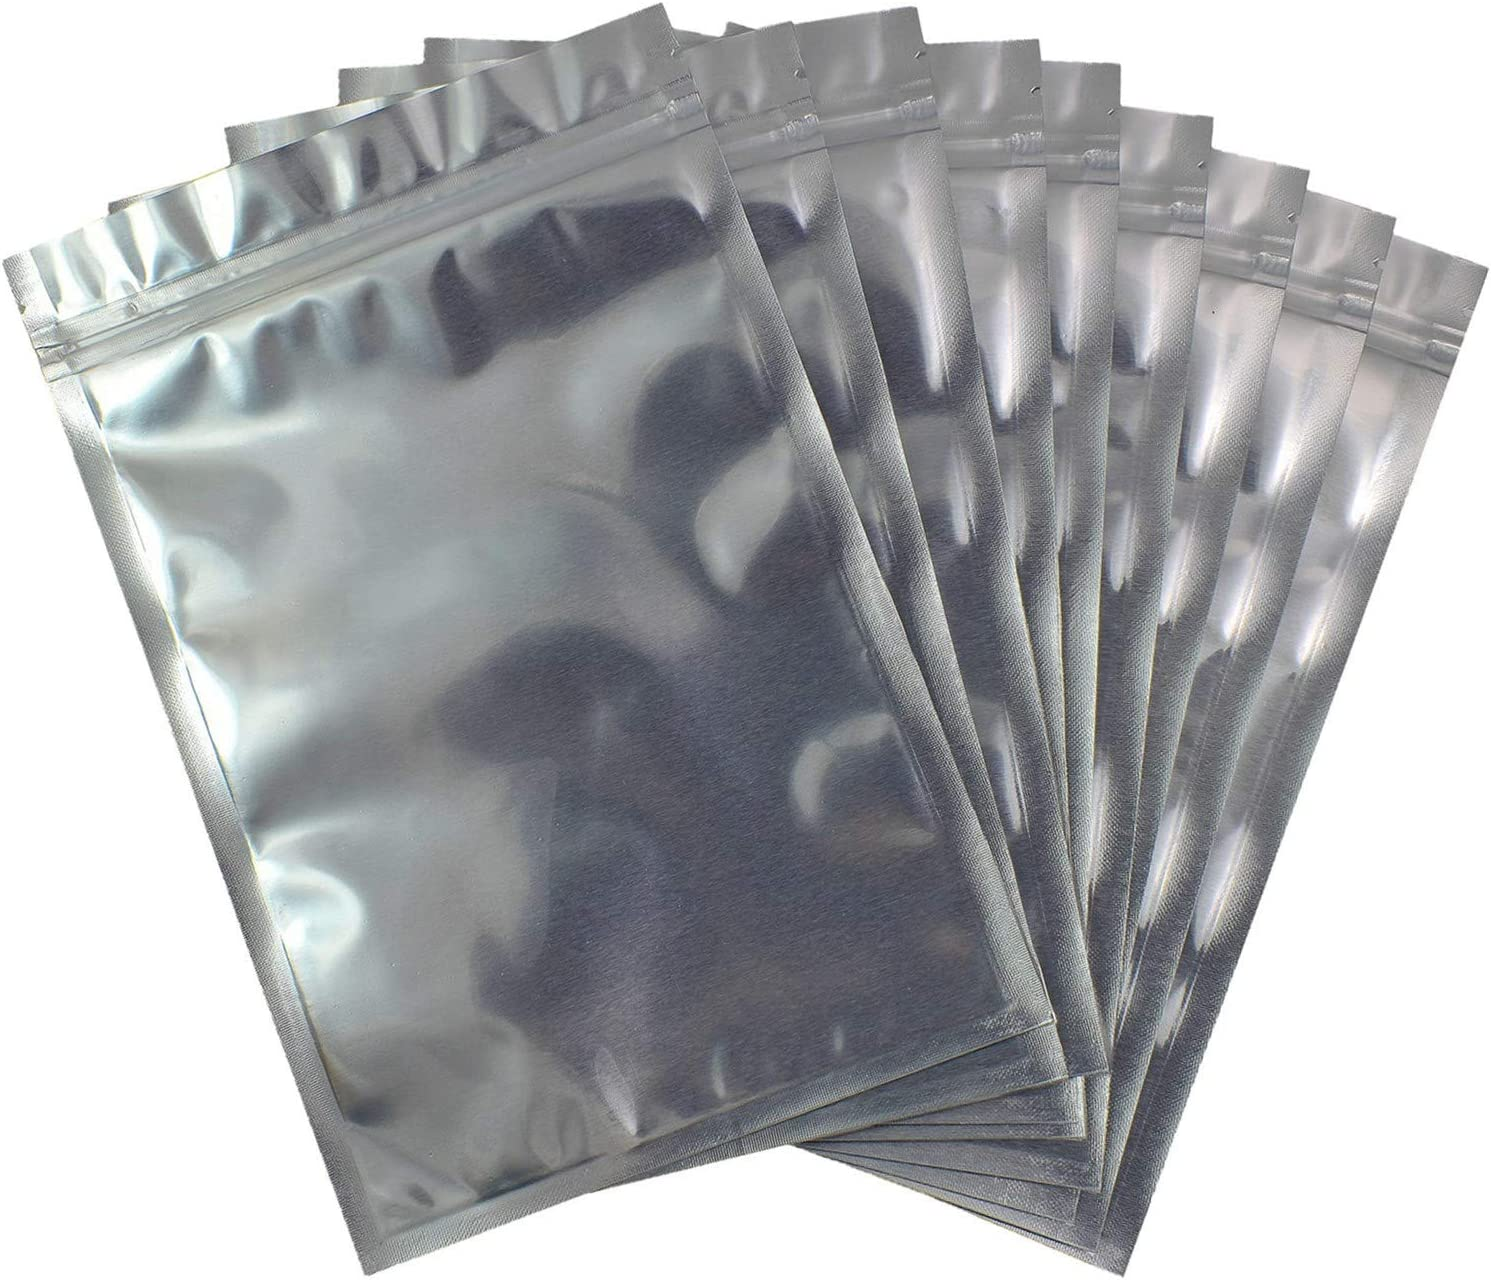 Smell Proof Bags Resealable Mylar Aluminum Packaging Storage Bag Transparent Plastic Ziplock Heat Seal (Silver)